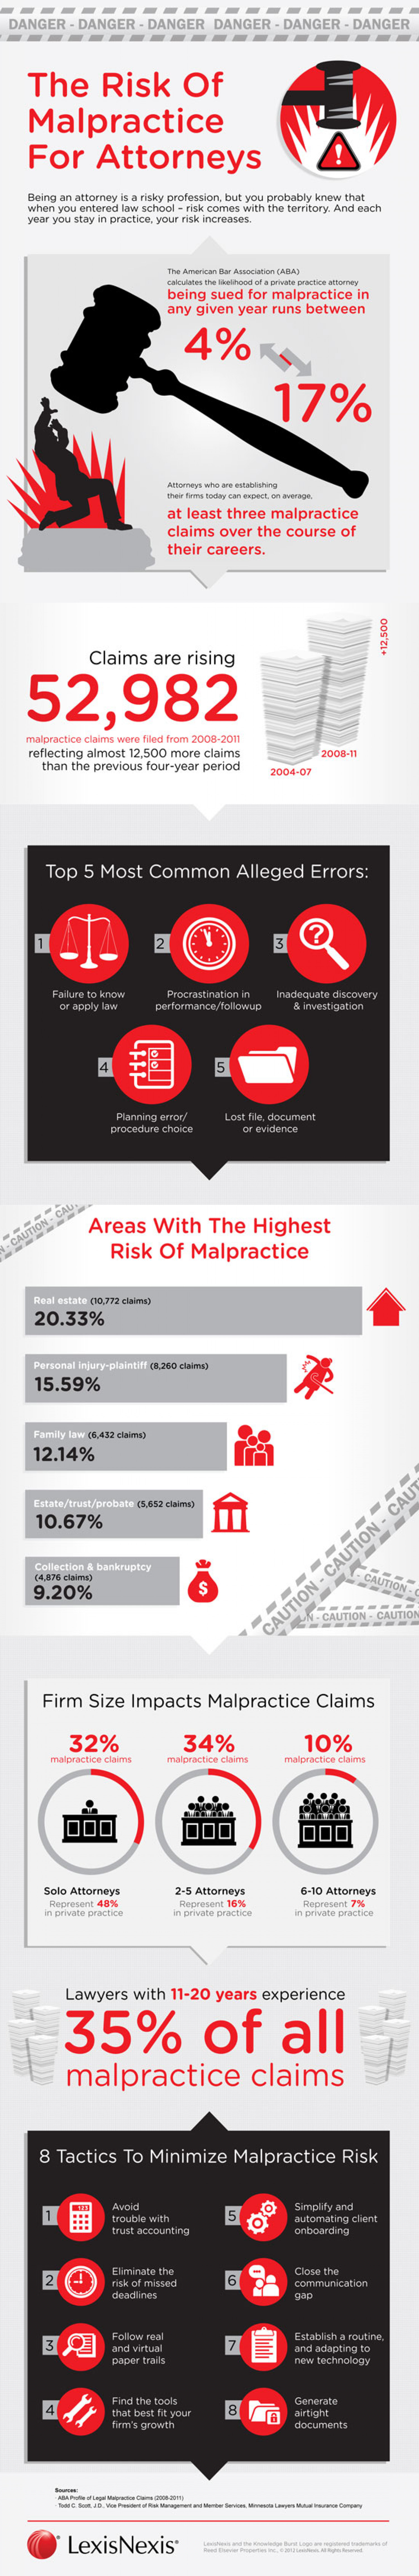 The Risk of Malpractice for Attorneys Infographic